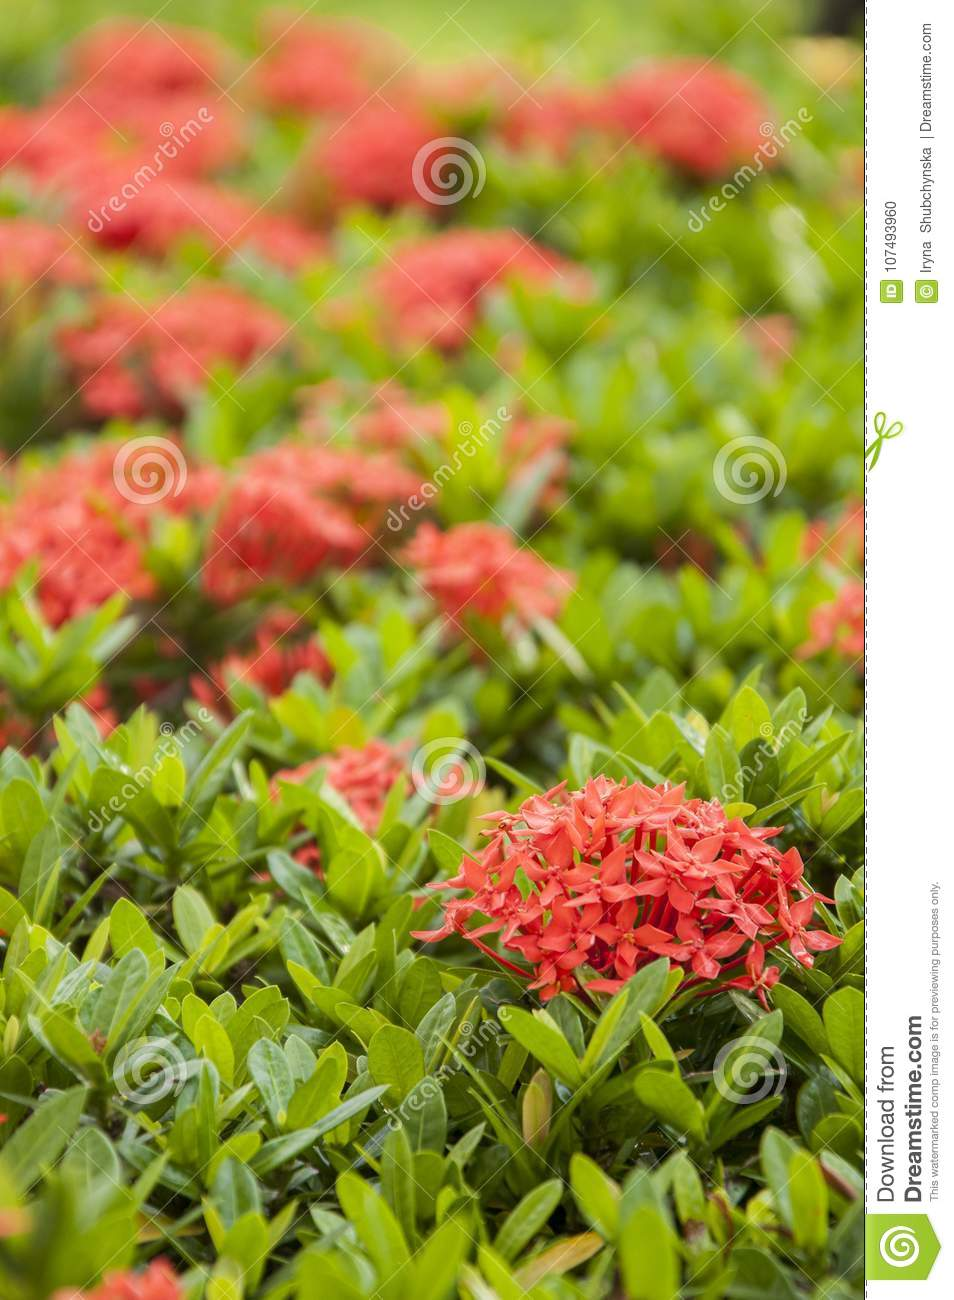 Fresh green small leaves of a tropical plant with pink flowers fresh green small leaves of a tropical plant with pink flowers mightylinksfo